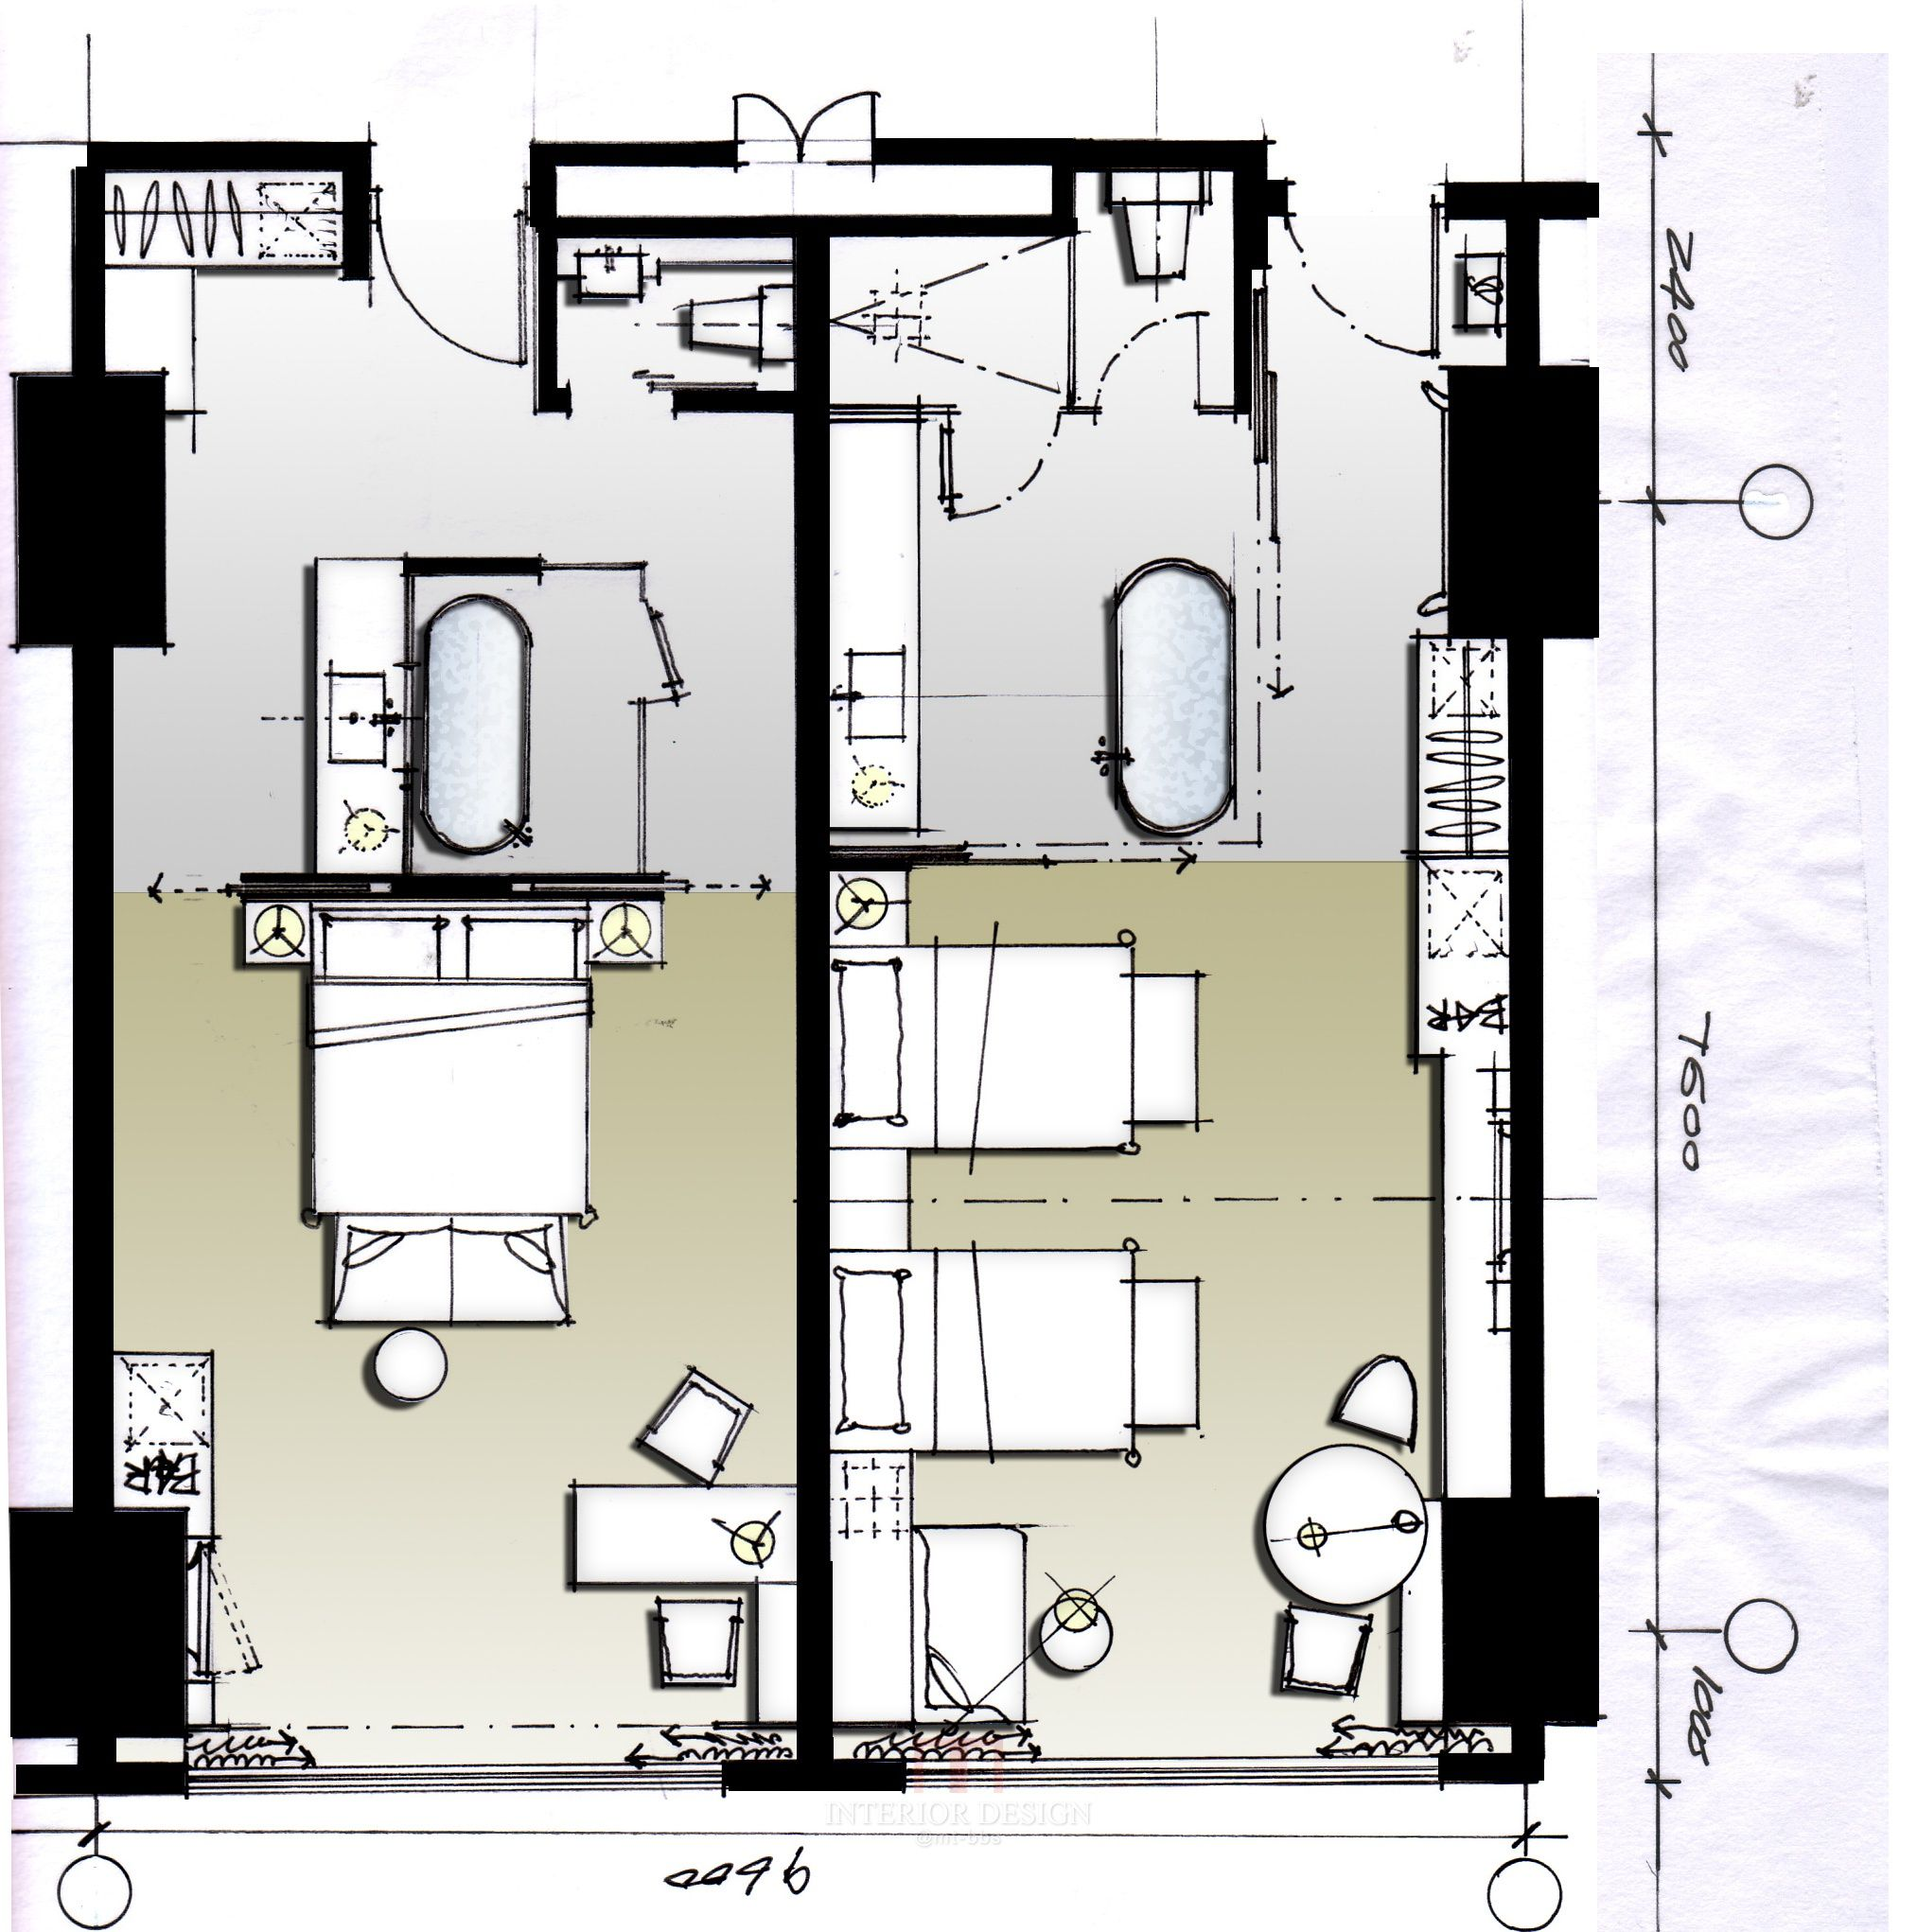 Hotel plan | archtects | Pinterest | Room, Interiors and ...